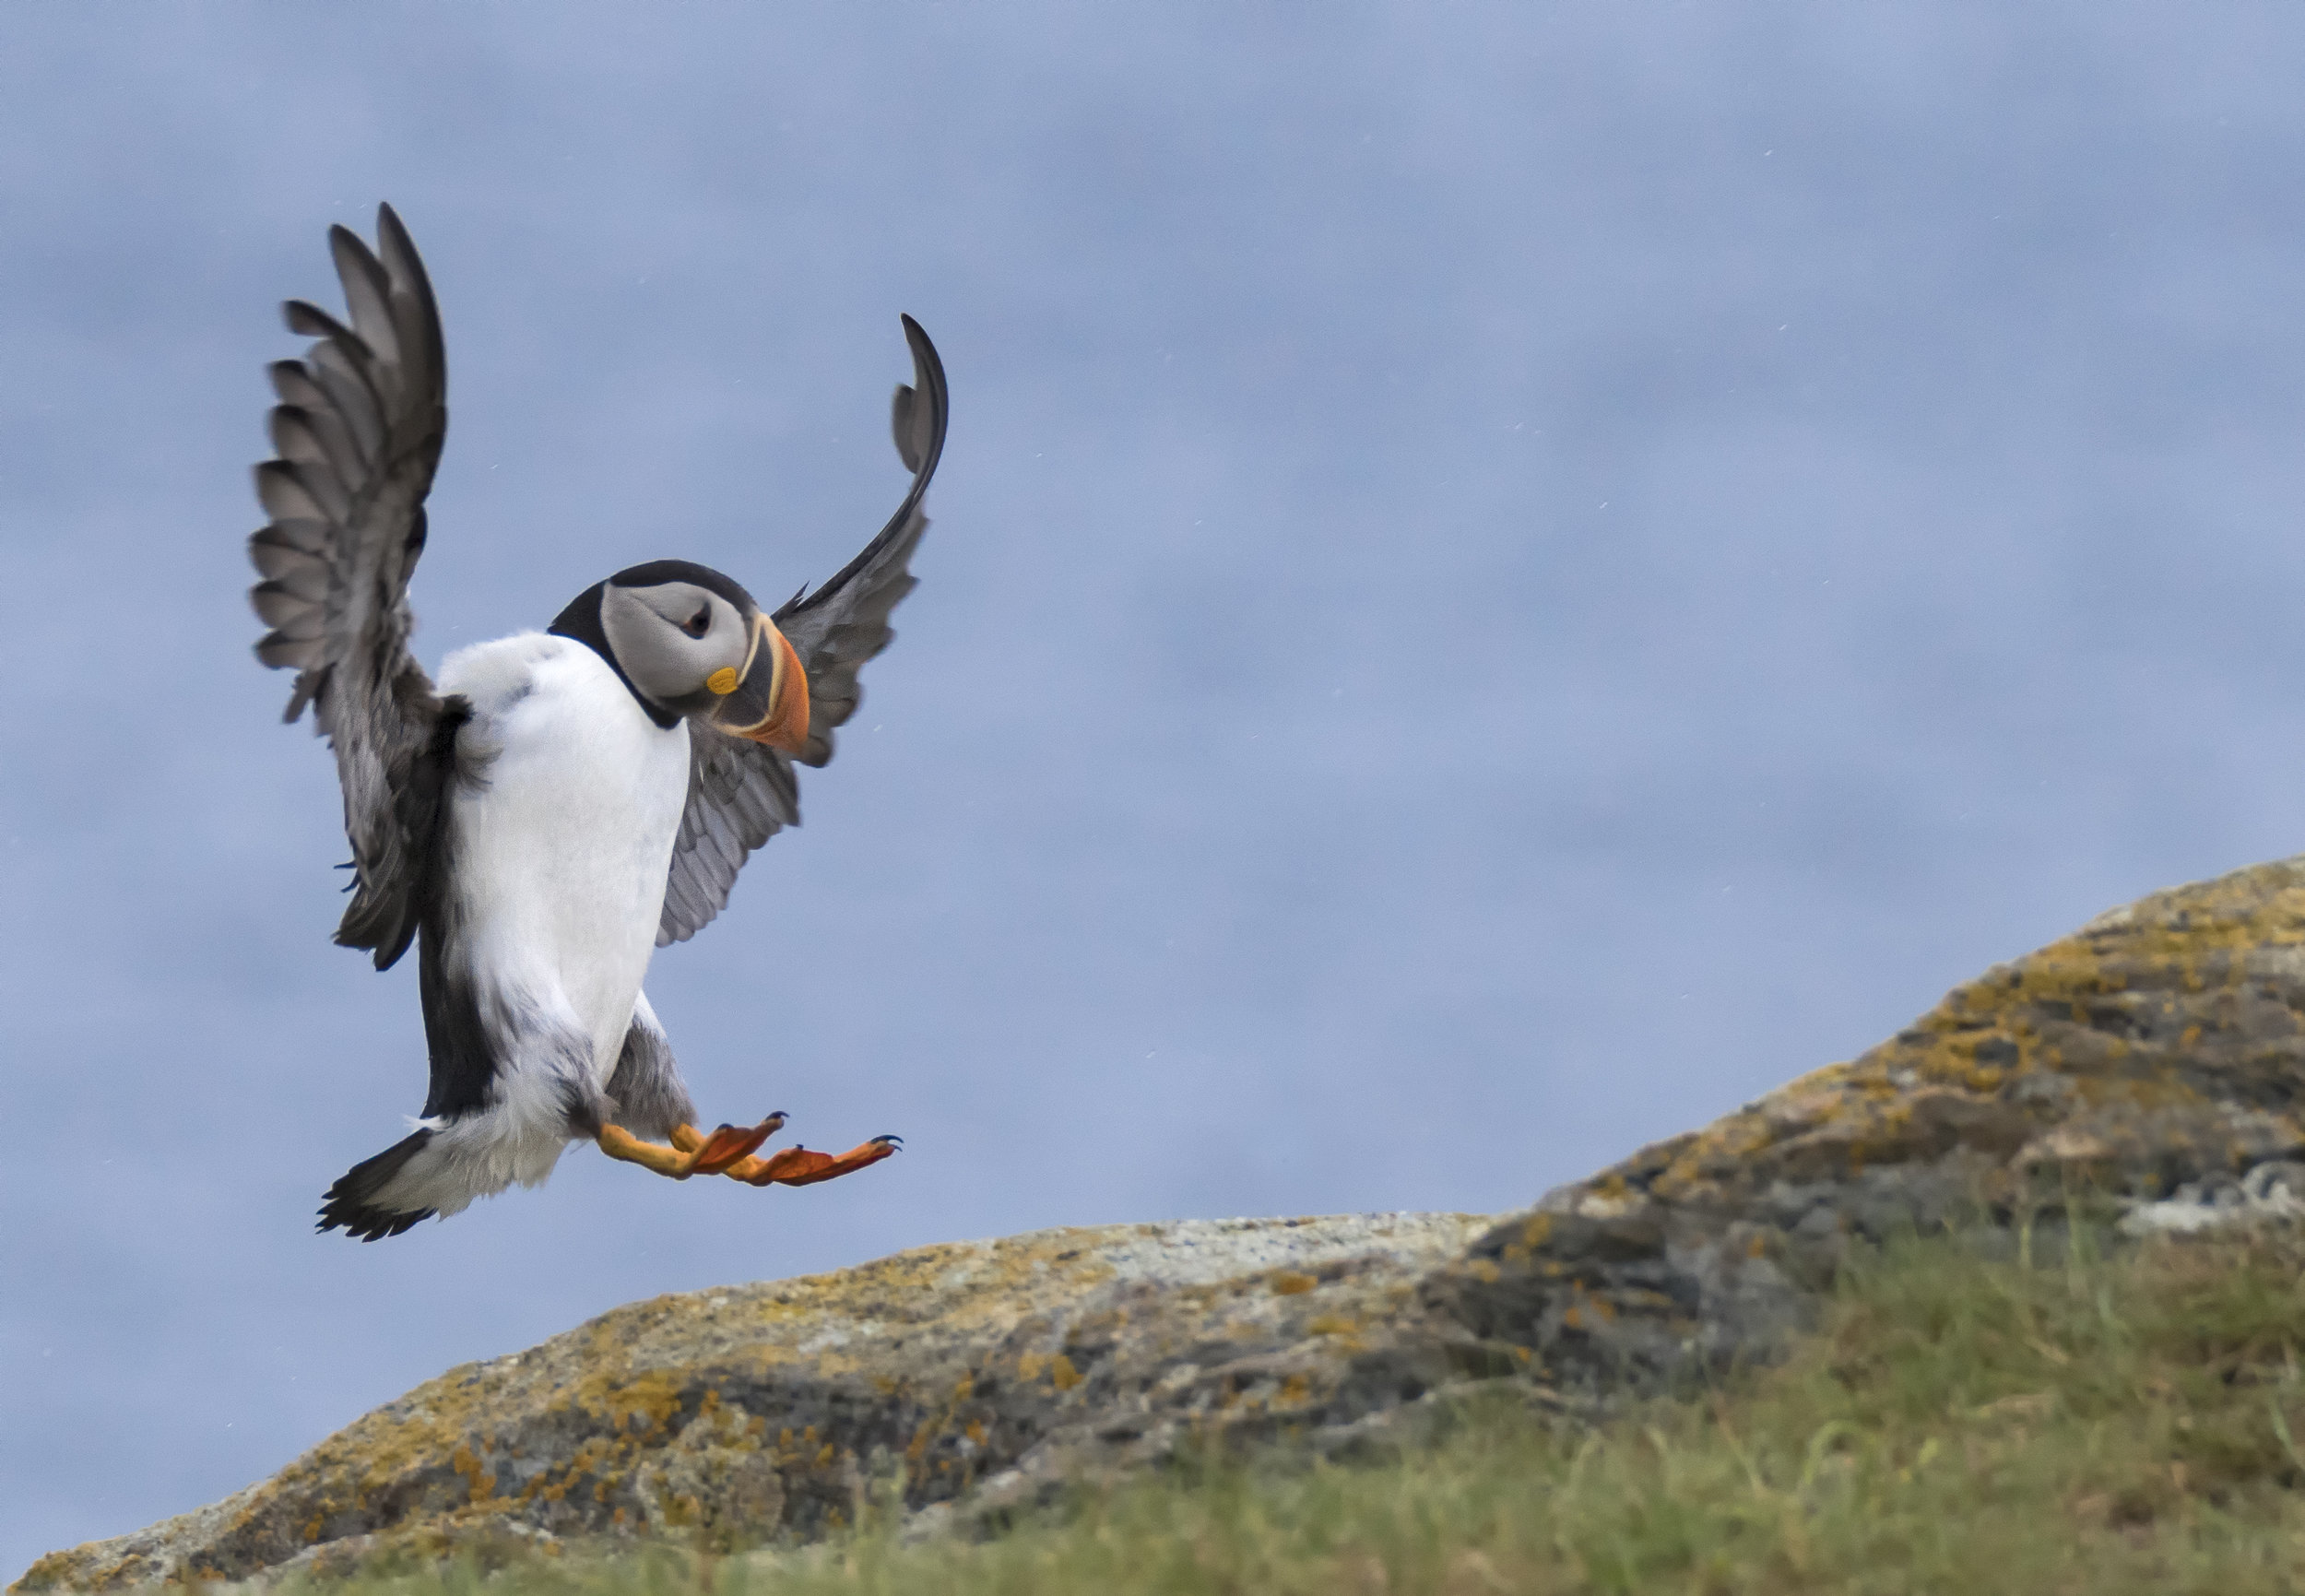 elliston+puffin+coming+in+for+landing.jpg